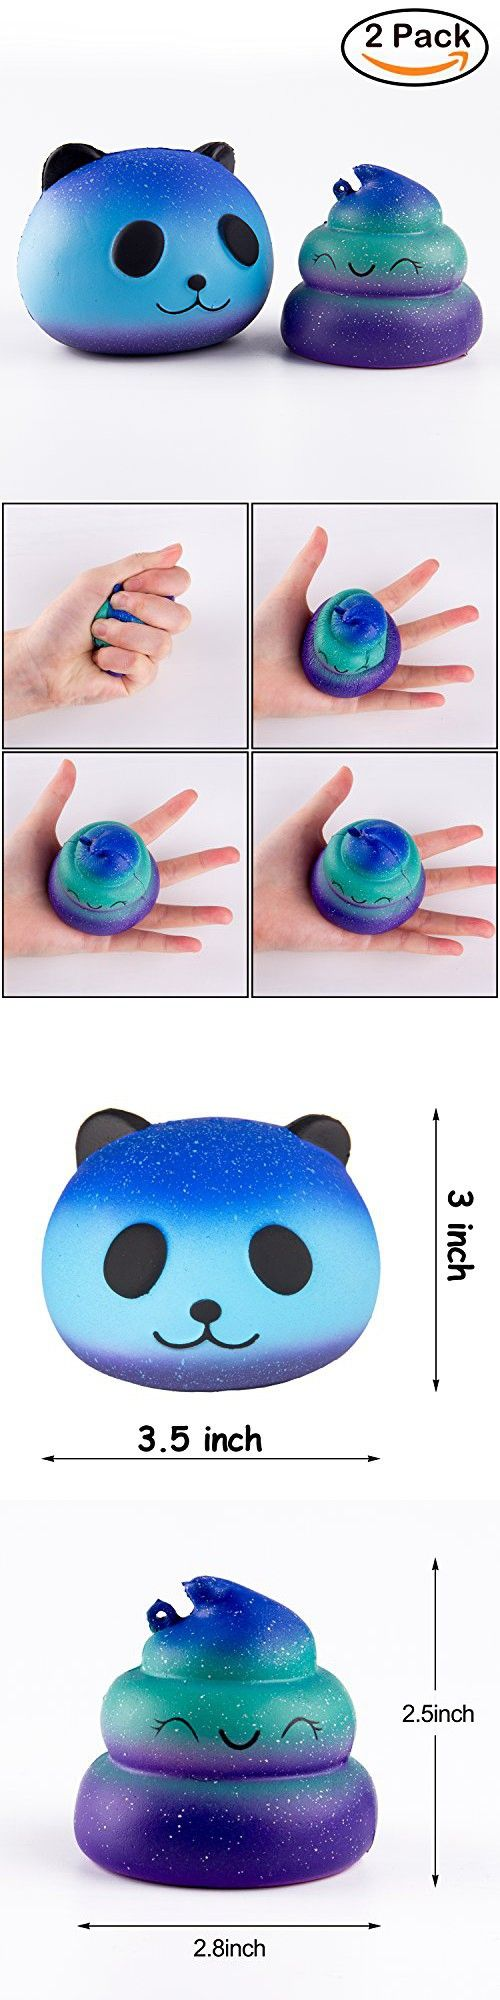 BeYumi Squishy Toys, Star Panda + Emoji Poop Cream Scented Squeeze Kid Toy Starry Charms Toy for Stress Relief, Collection Gift, Decorative props, Hand Toy and Time Killing